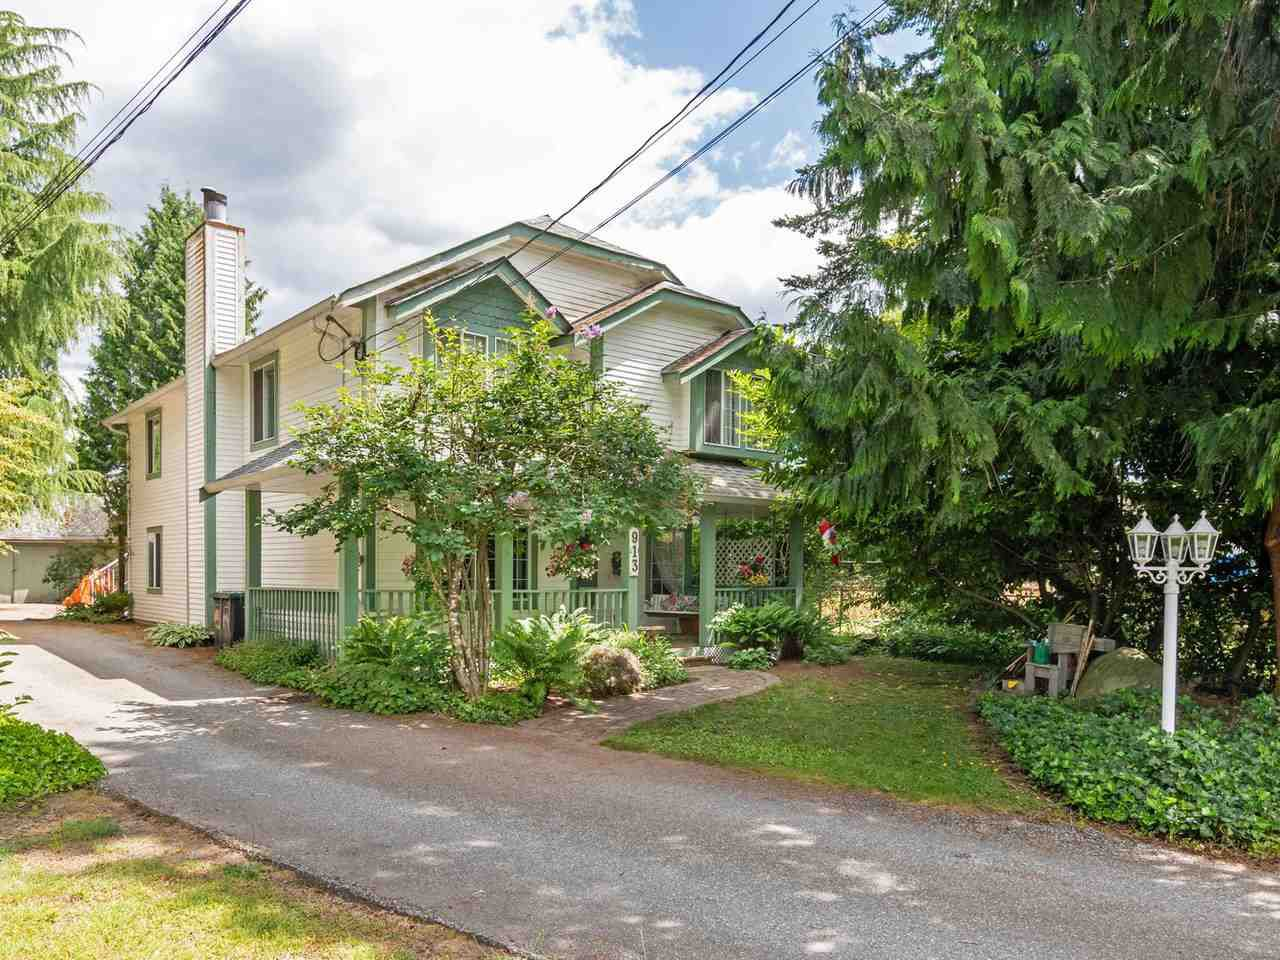 Main Photo: 913 LILLIAN Street in Coquitlam: Harbour Chines House for sale : MLS®# R2375378